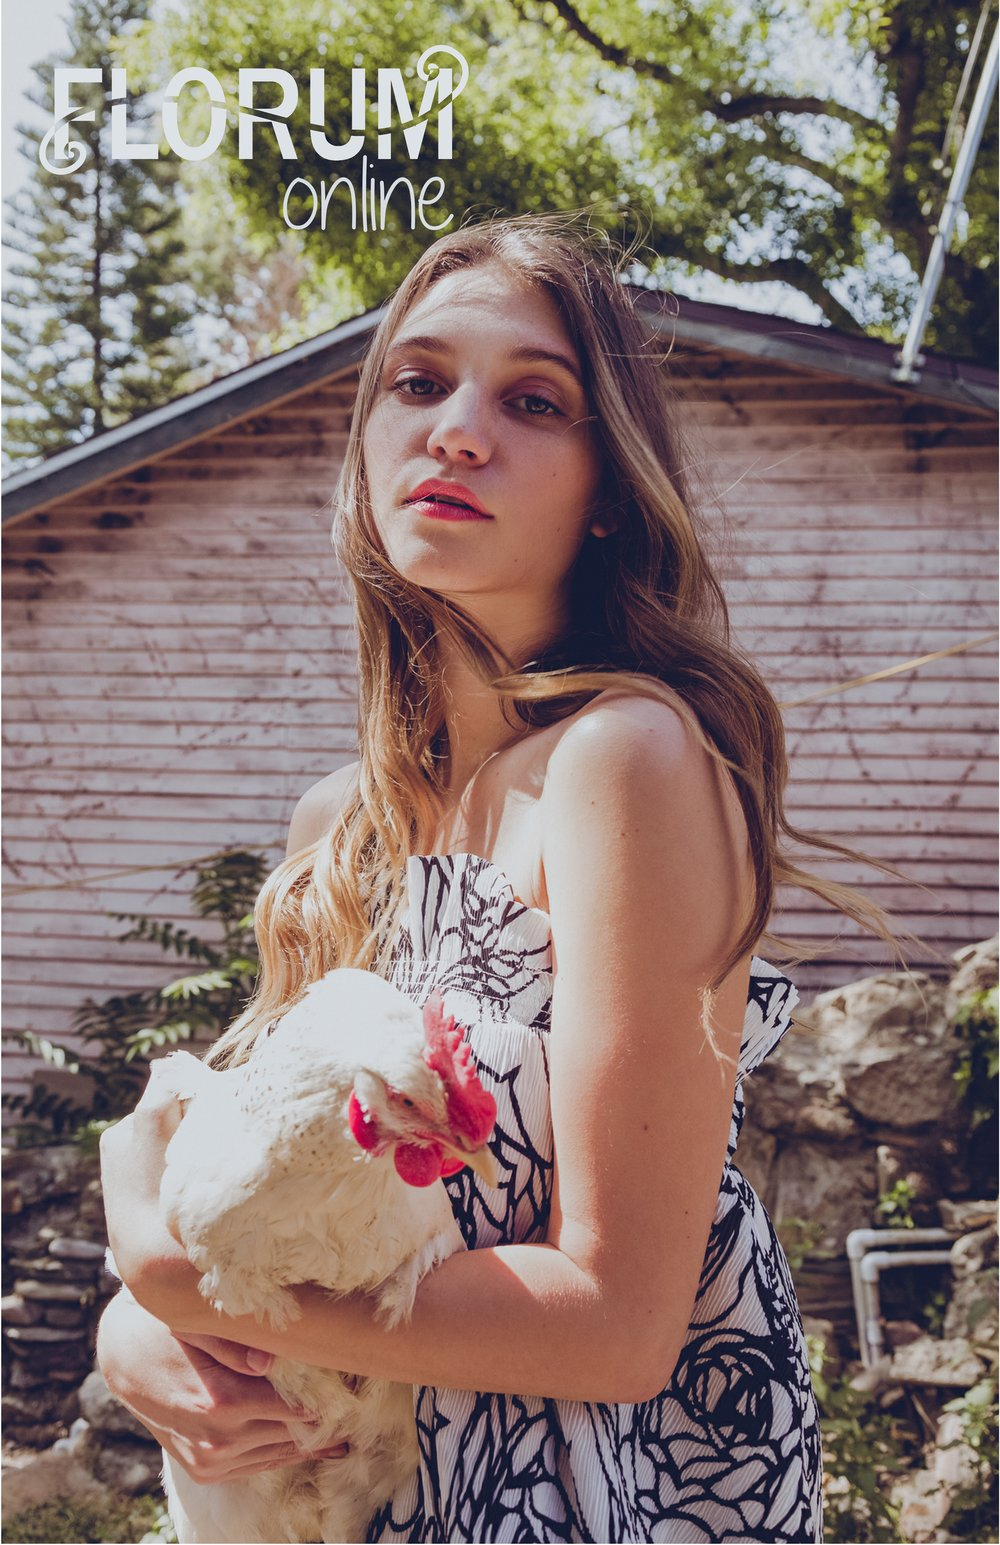 farm chicken editorial Julia Torchine - photographer, creative director wardrobe stylist -The Russian Doll - silverlake farms -MP Management - evelyn feliciano makeup and hair for florum fashion magazine submission.jpg